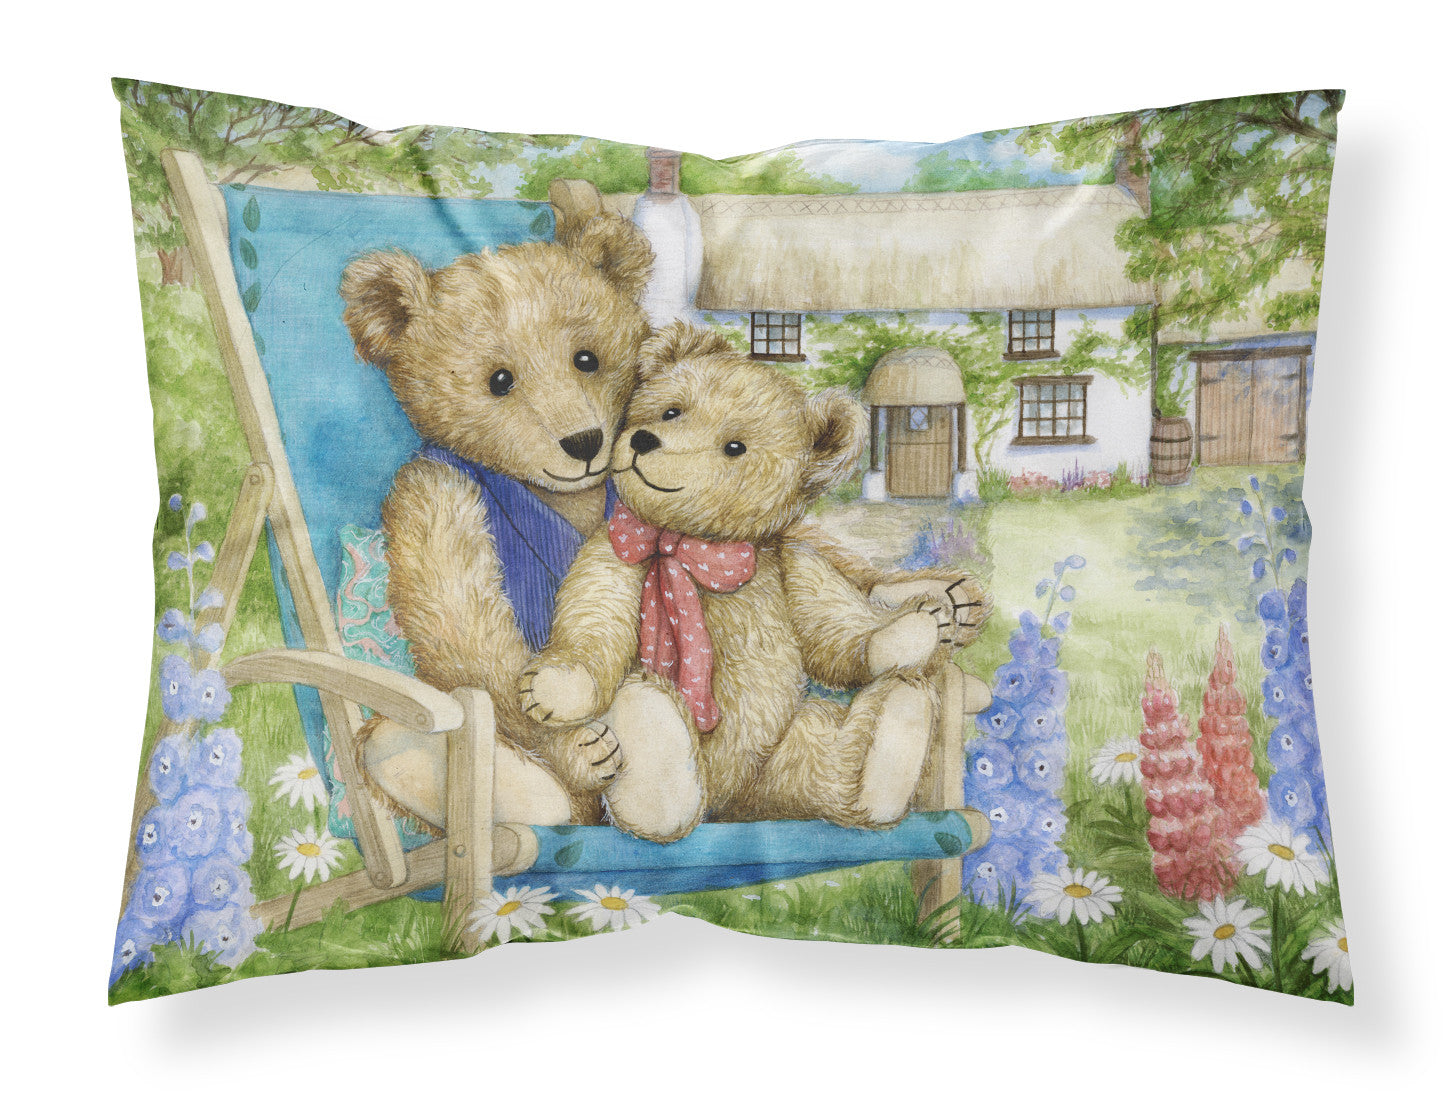 Springtime Teddy Bears in Flowers Fabric Standard Pillowcase CDCO0306PILLOWCASE by Caroline's Treasures